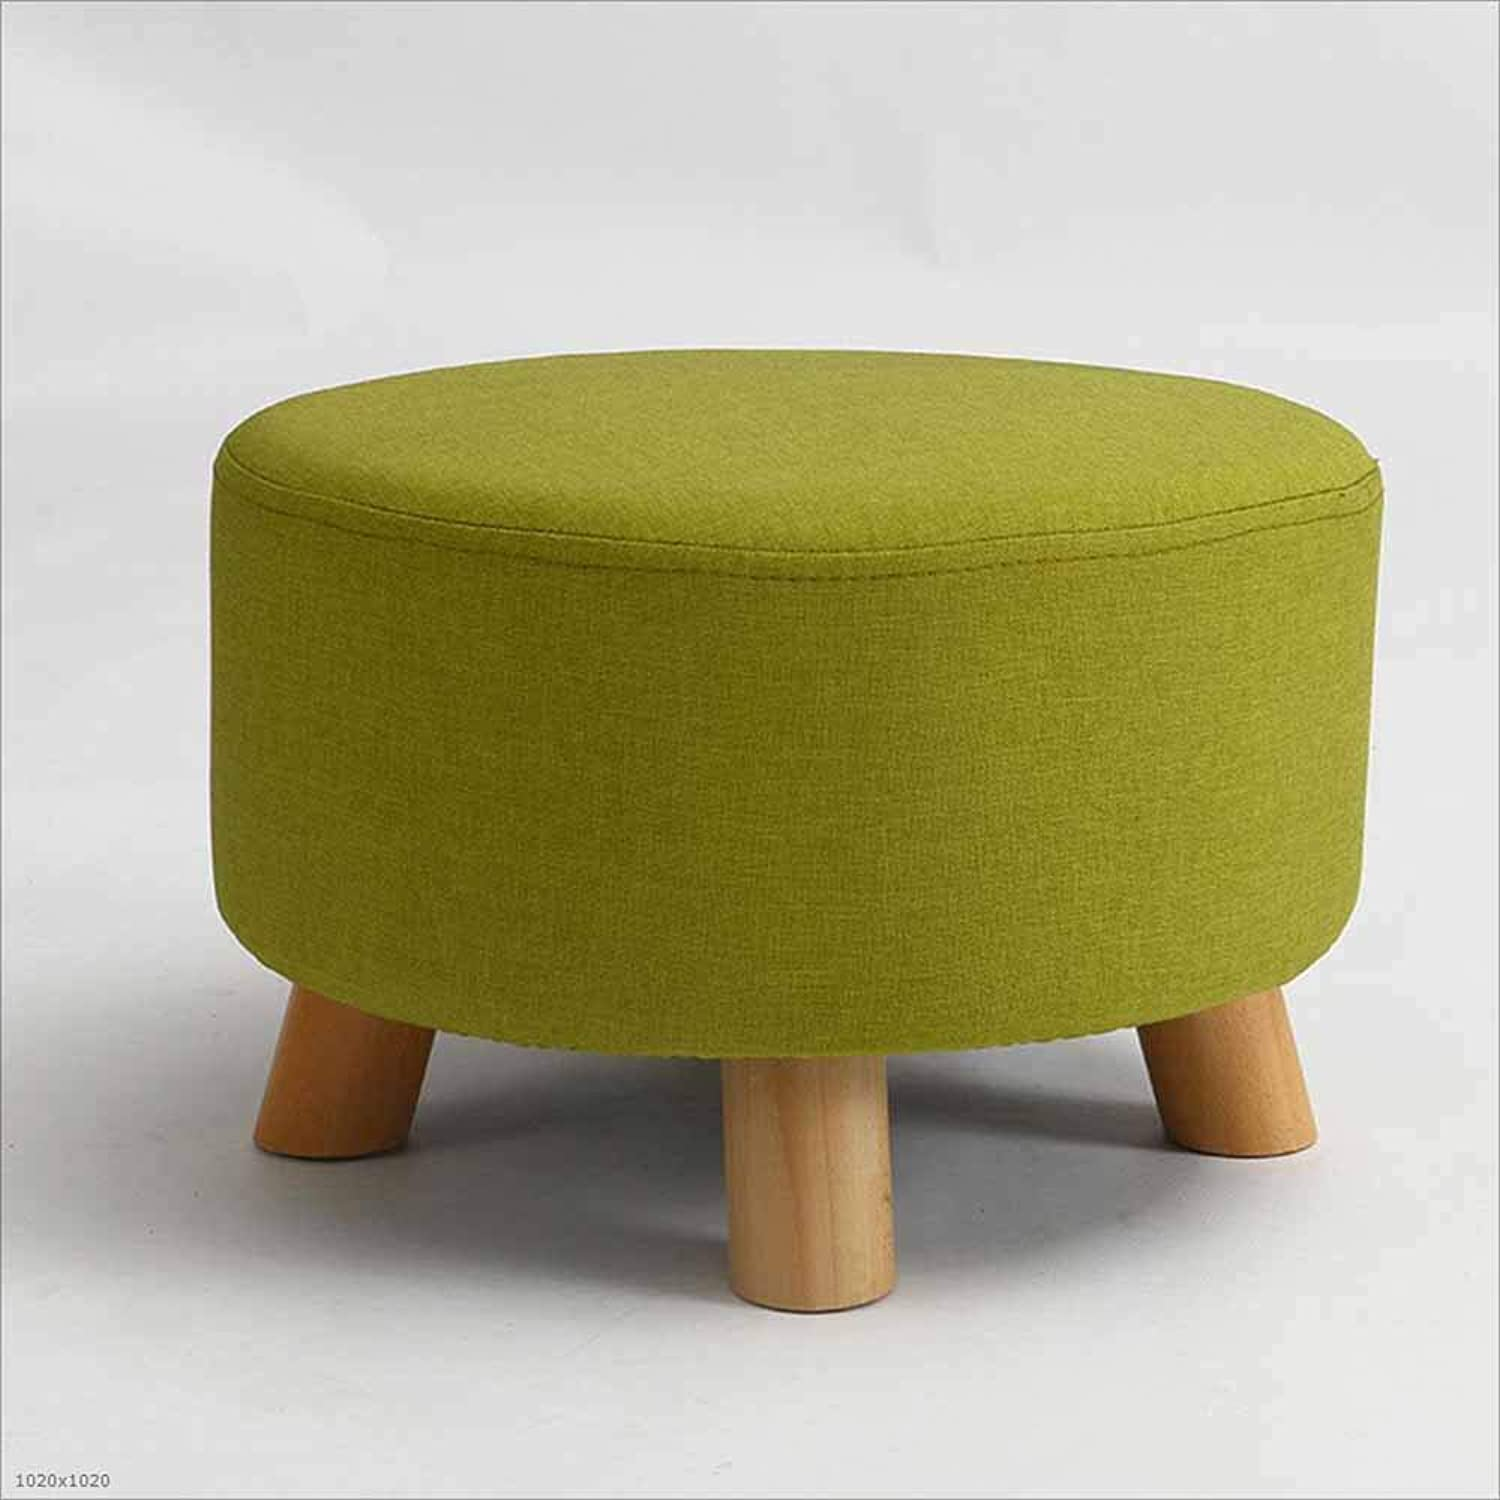 Sofa Stool Solid Wood Stool Fabric Washable Coffee Table Stool Small Stool Suitable for Living Room Bedroom, 1